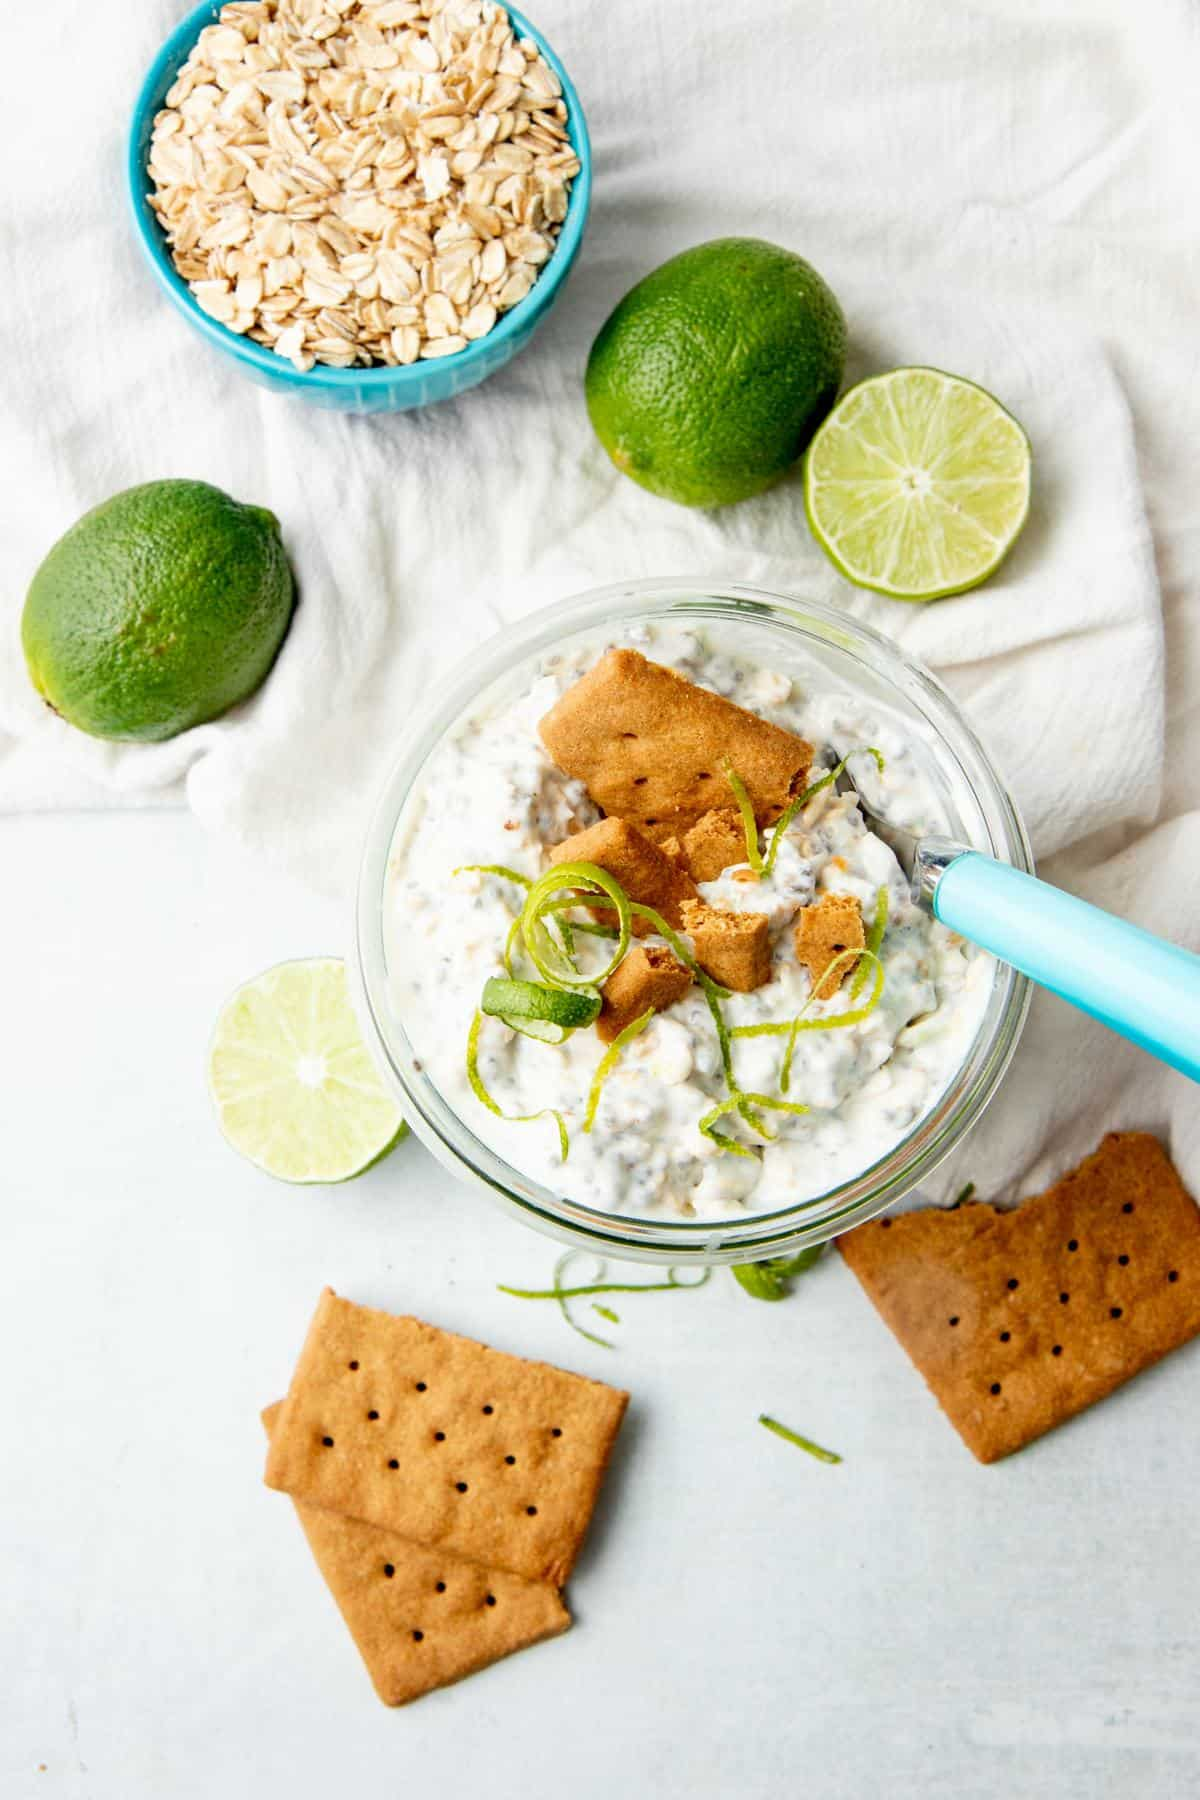 A spoon with a blue handle sits in a jar of overnight oats. Limes and graham crackers surround the jar.